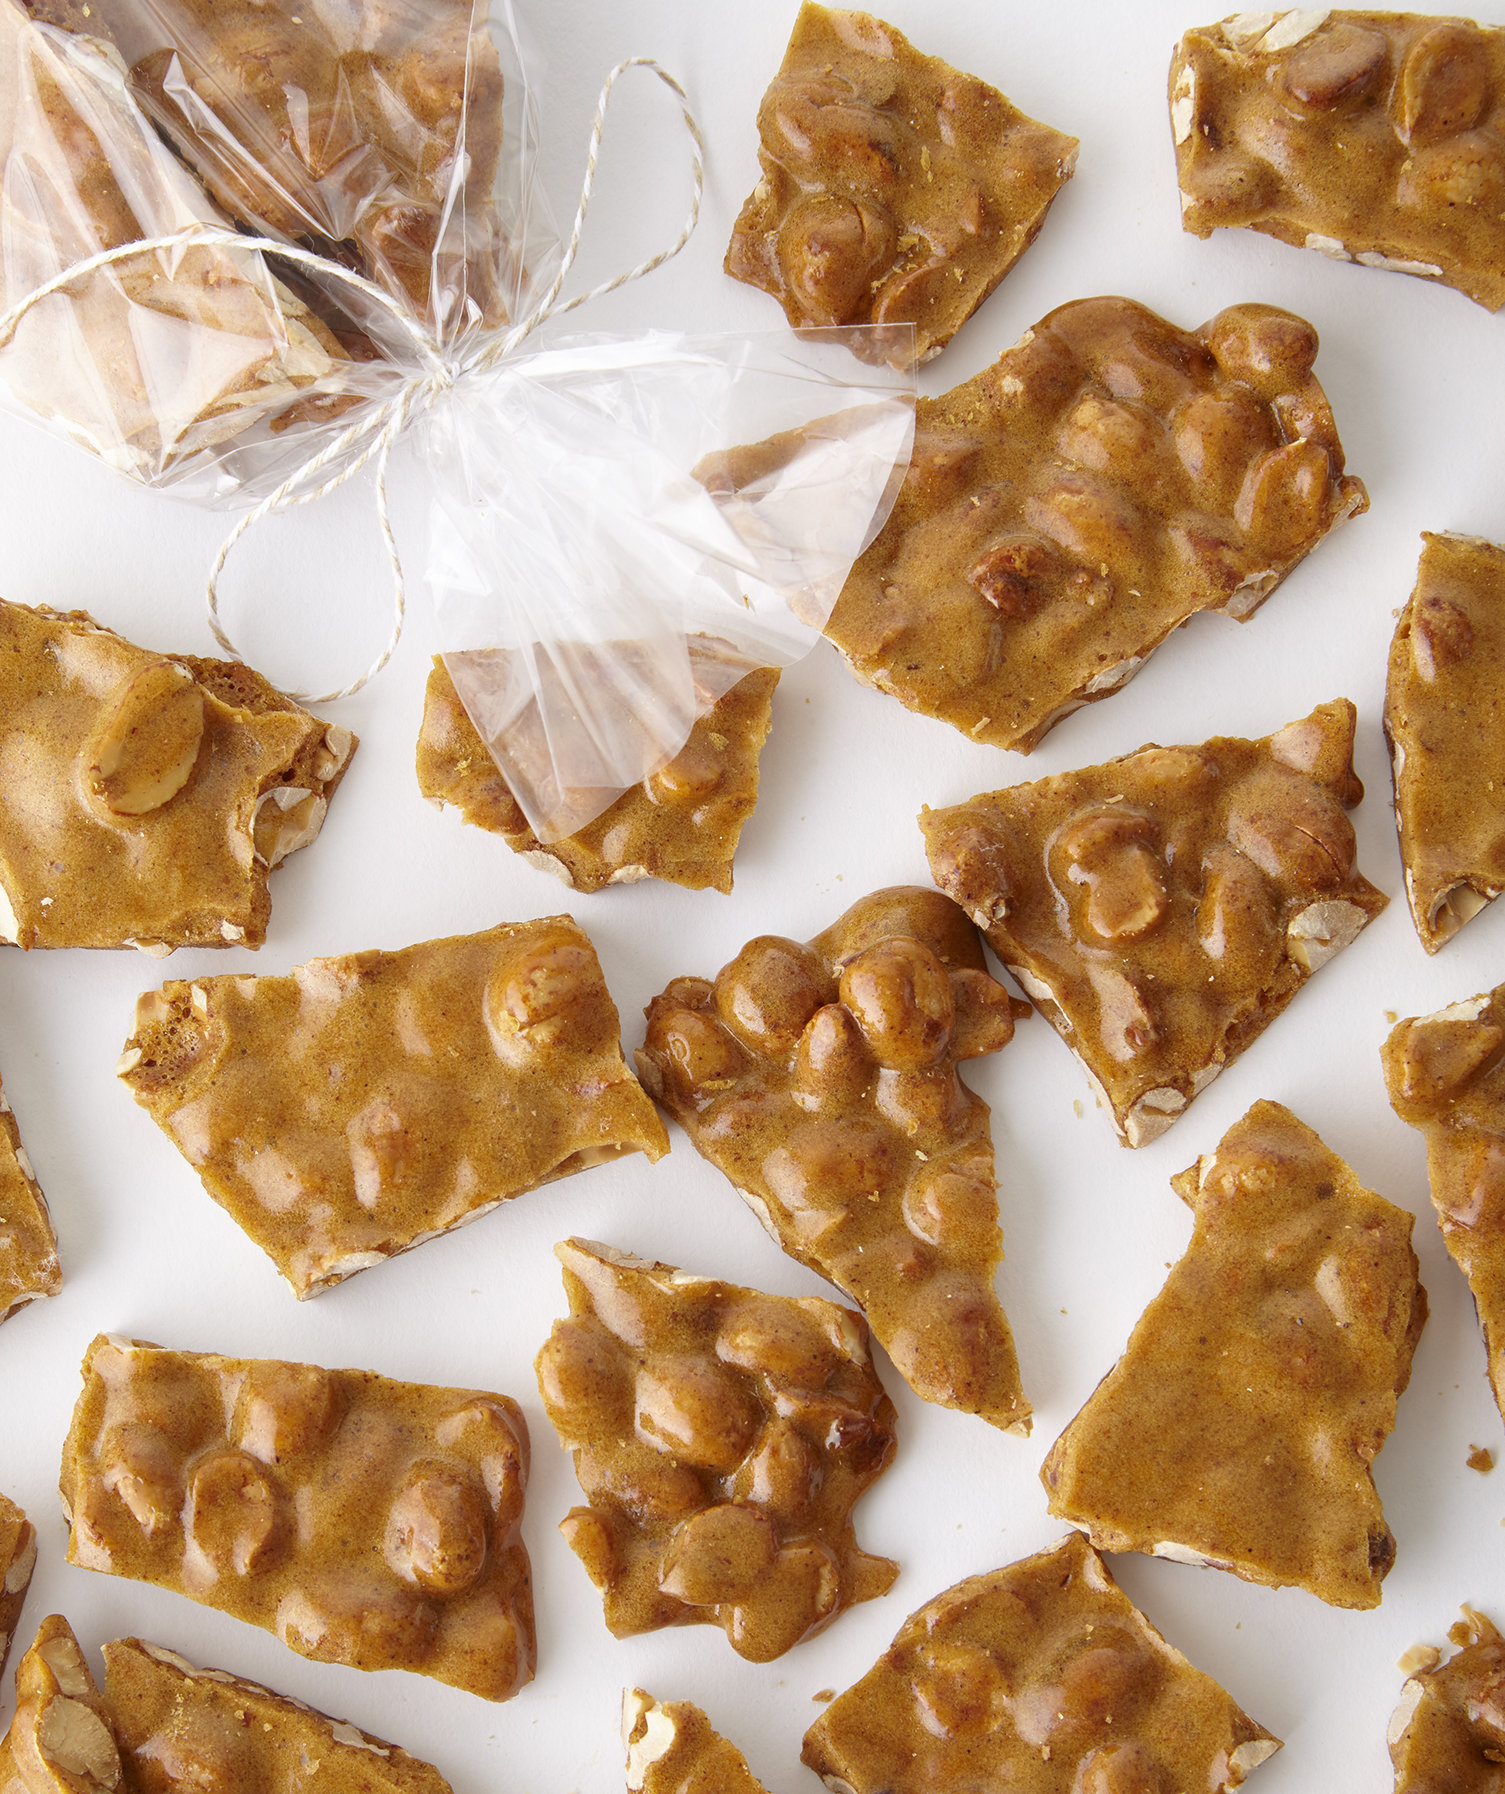 Spicy Peanut Brittle